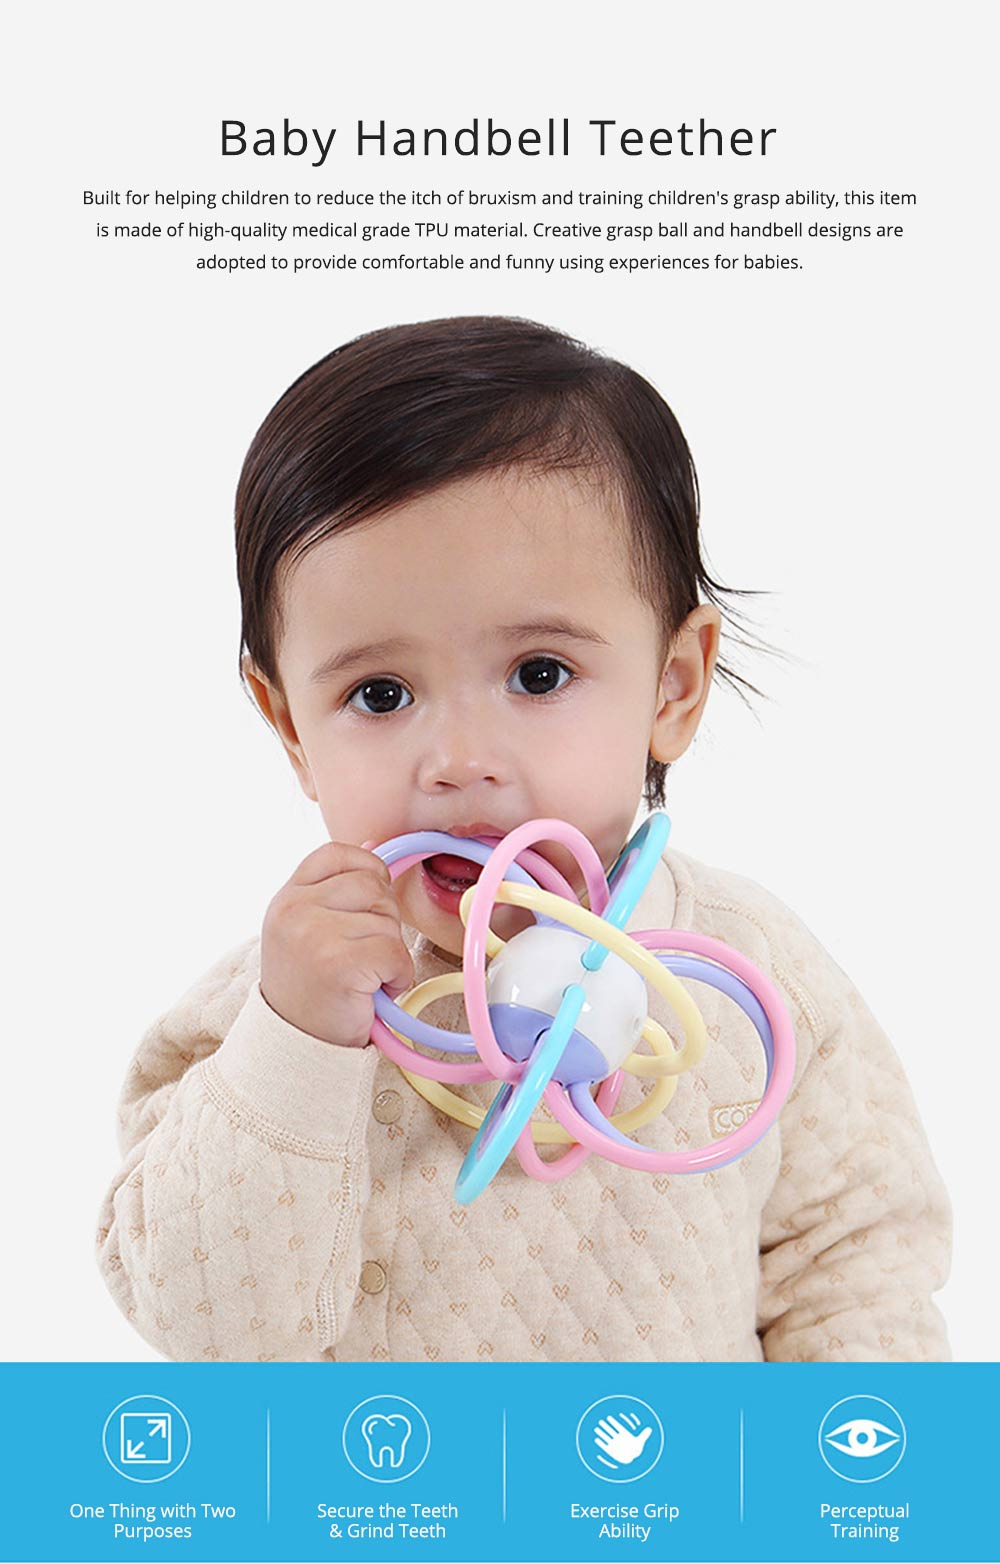 Creative Infant Grasping Spin Handbell Sensory Teether, Flexible Soft TPU Teething Early Education Rattle Toy 0